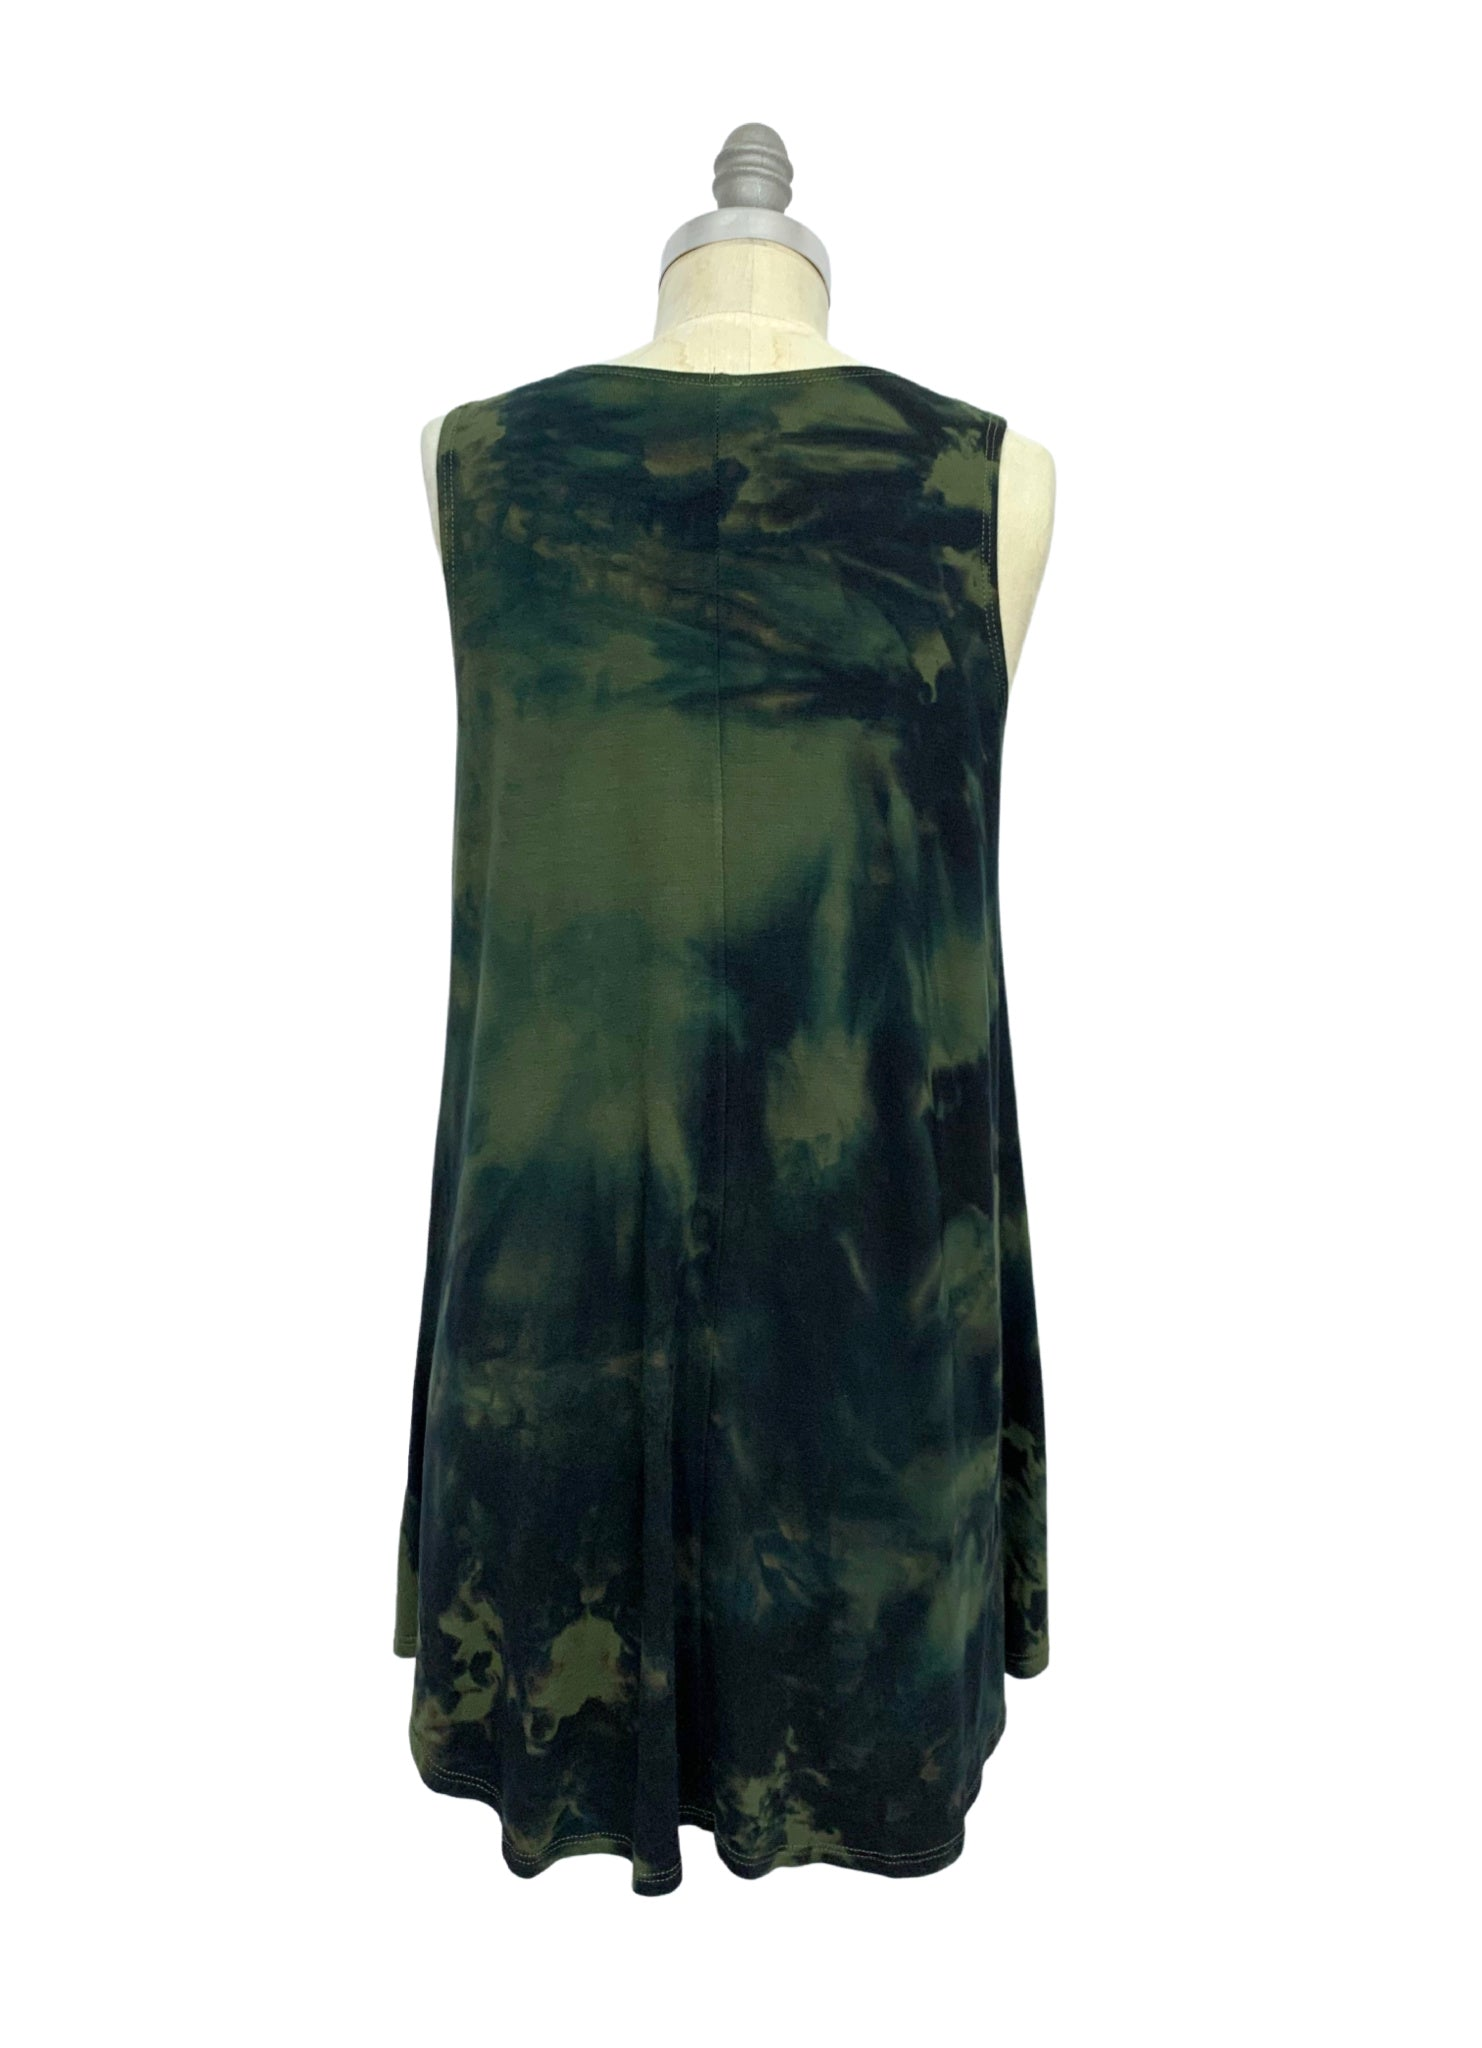 A-Line Tunic Tank in Olive & Black